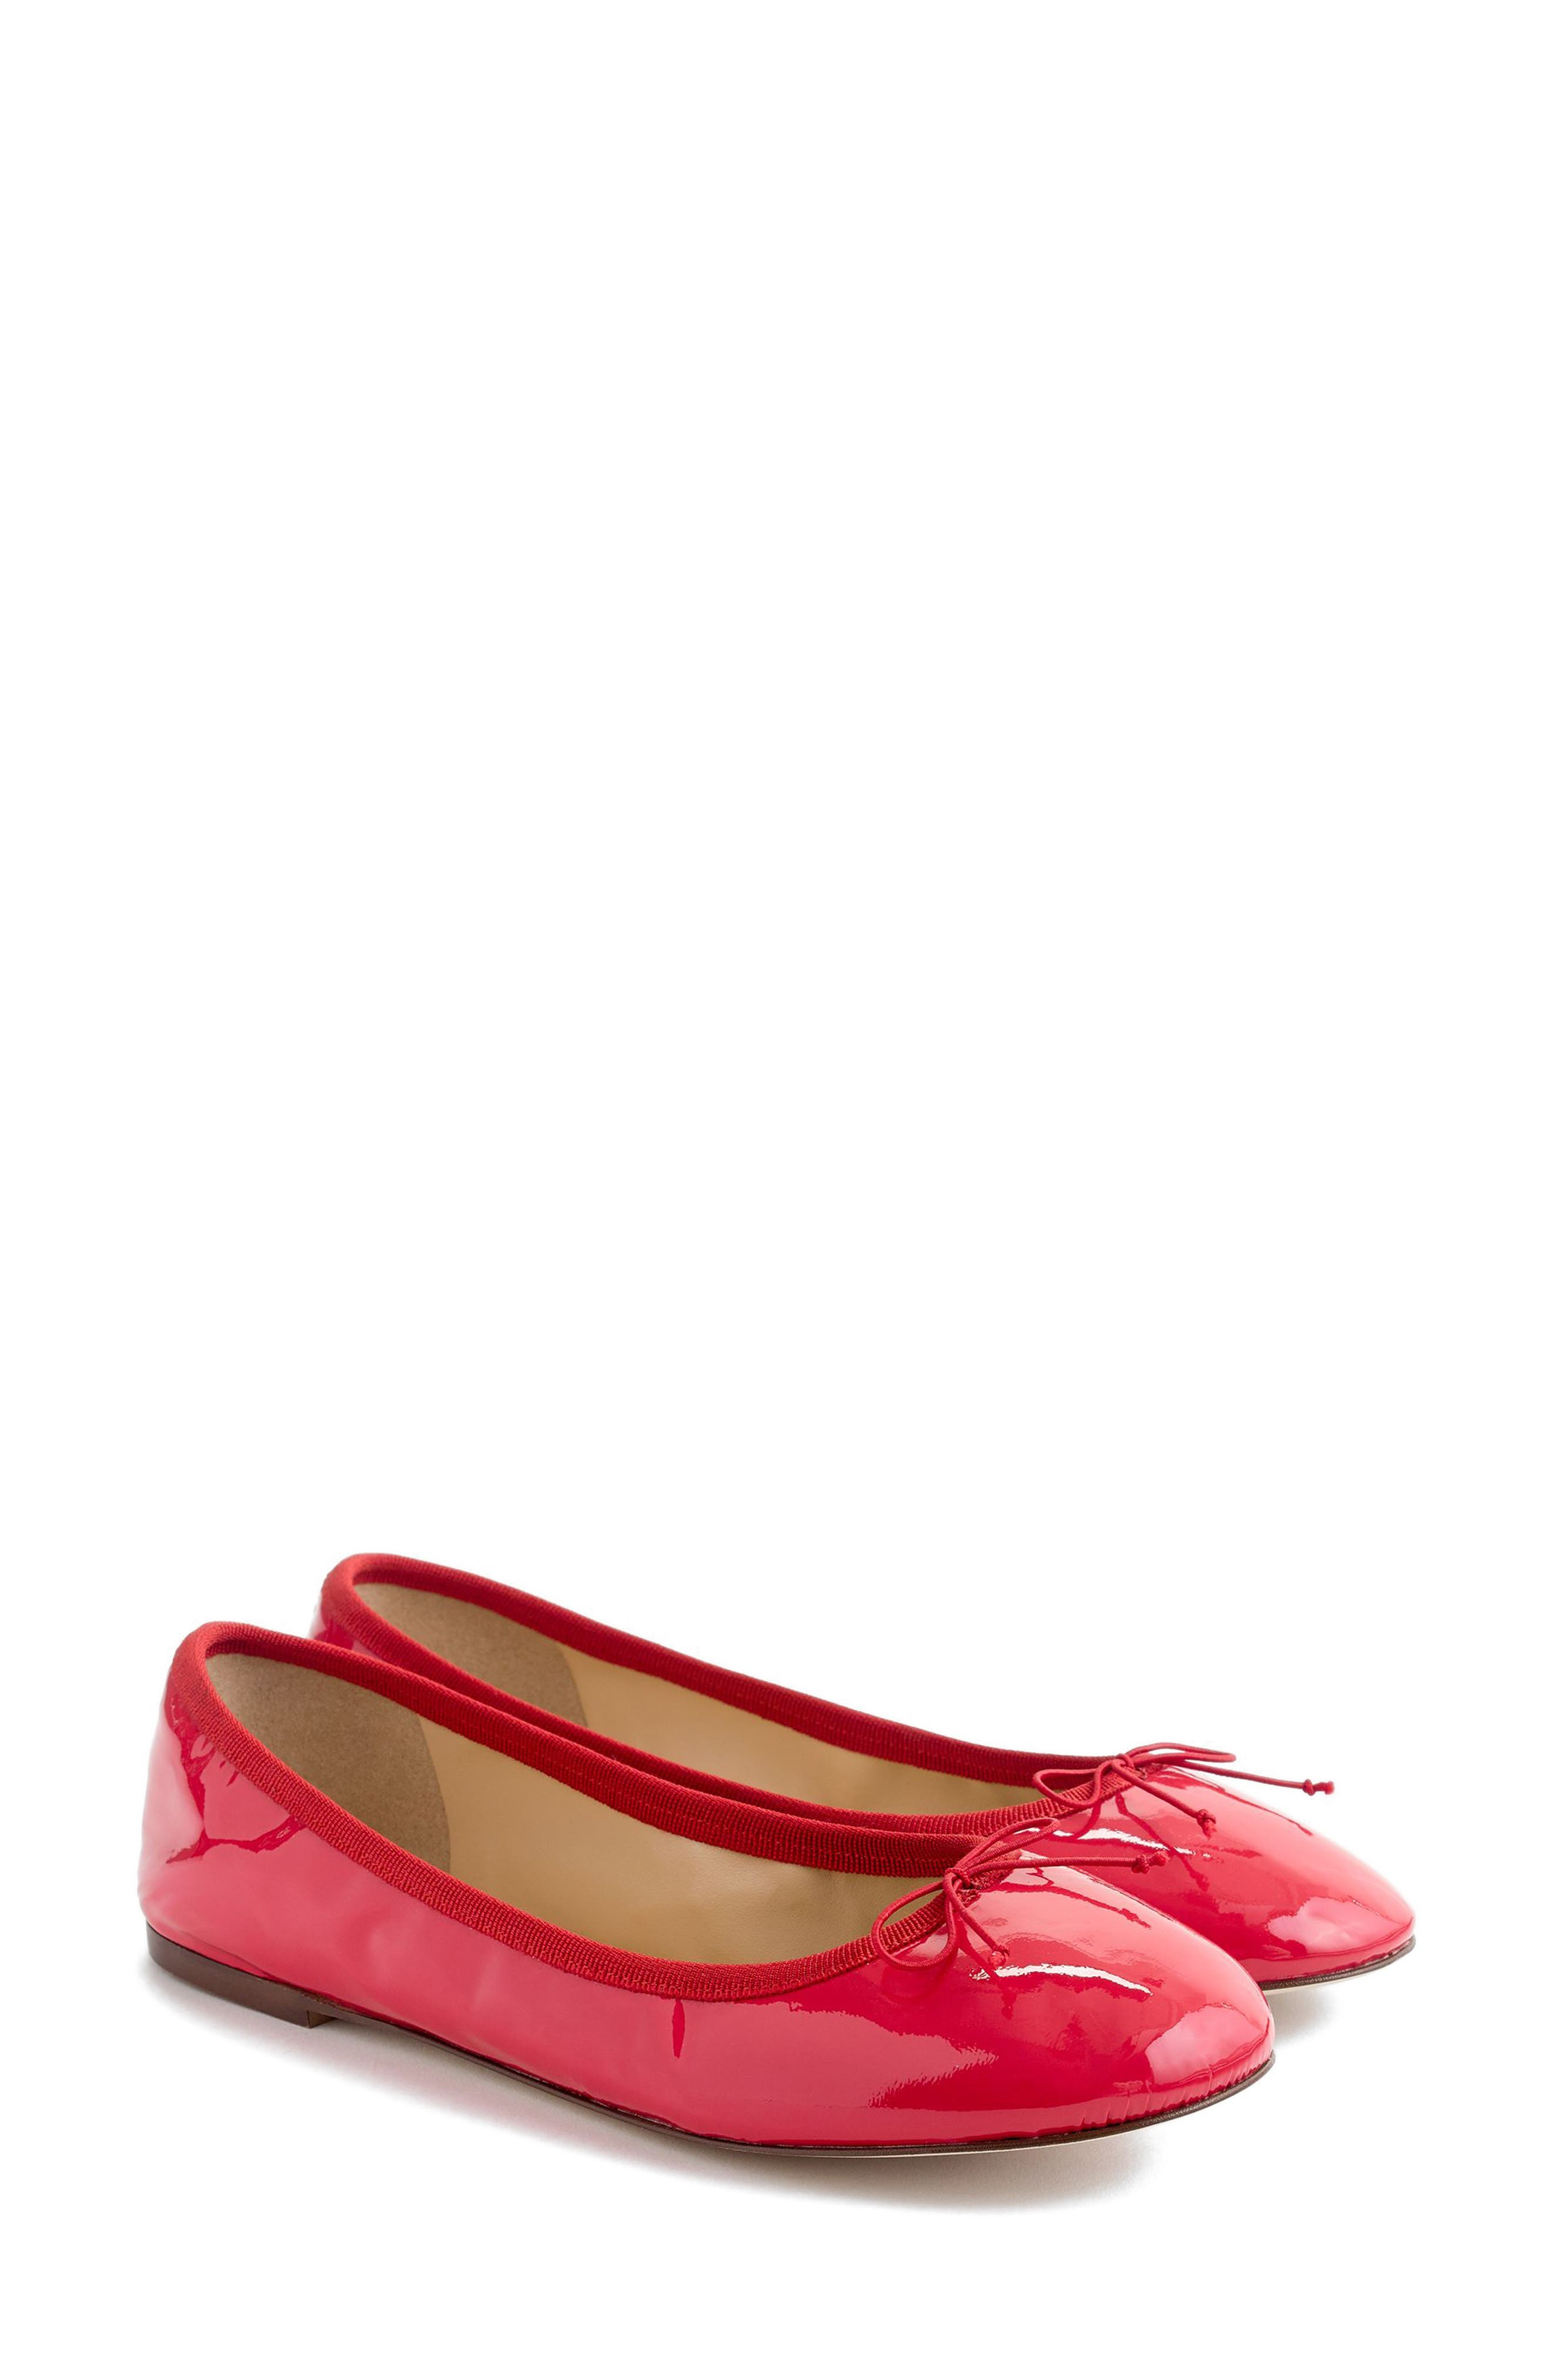 J.Crew Evie Ballet Flat,                             Main thumbnail 1, color,                             Providence Red Leather